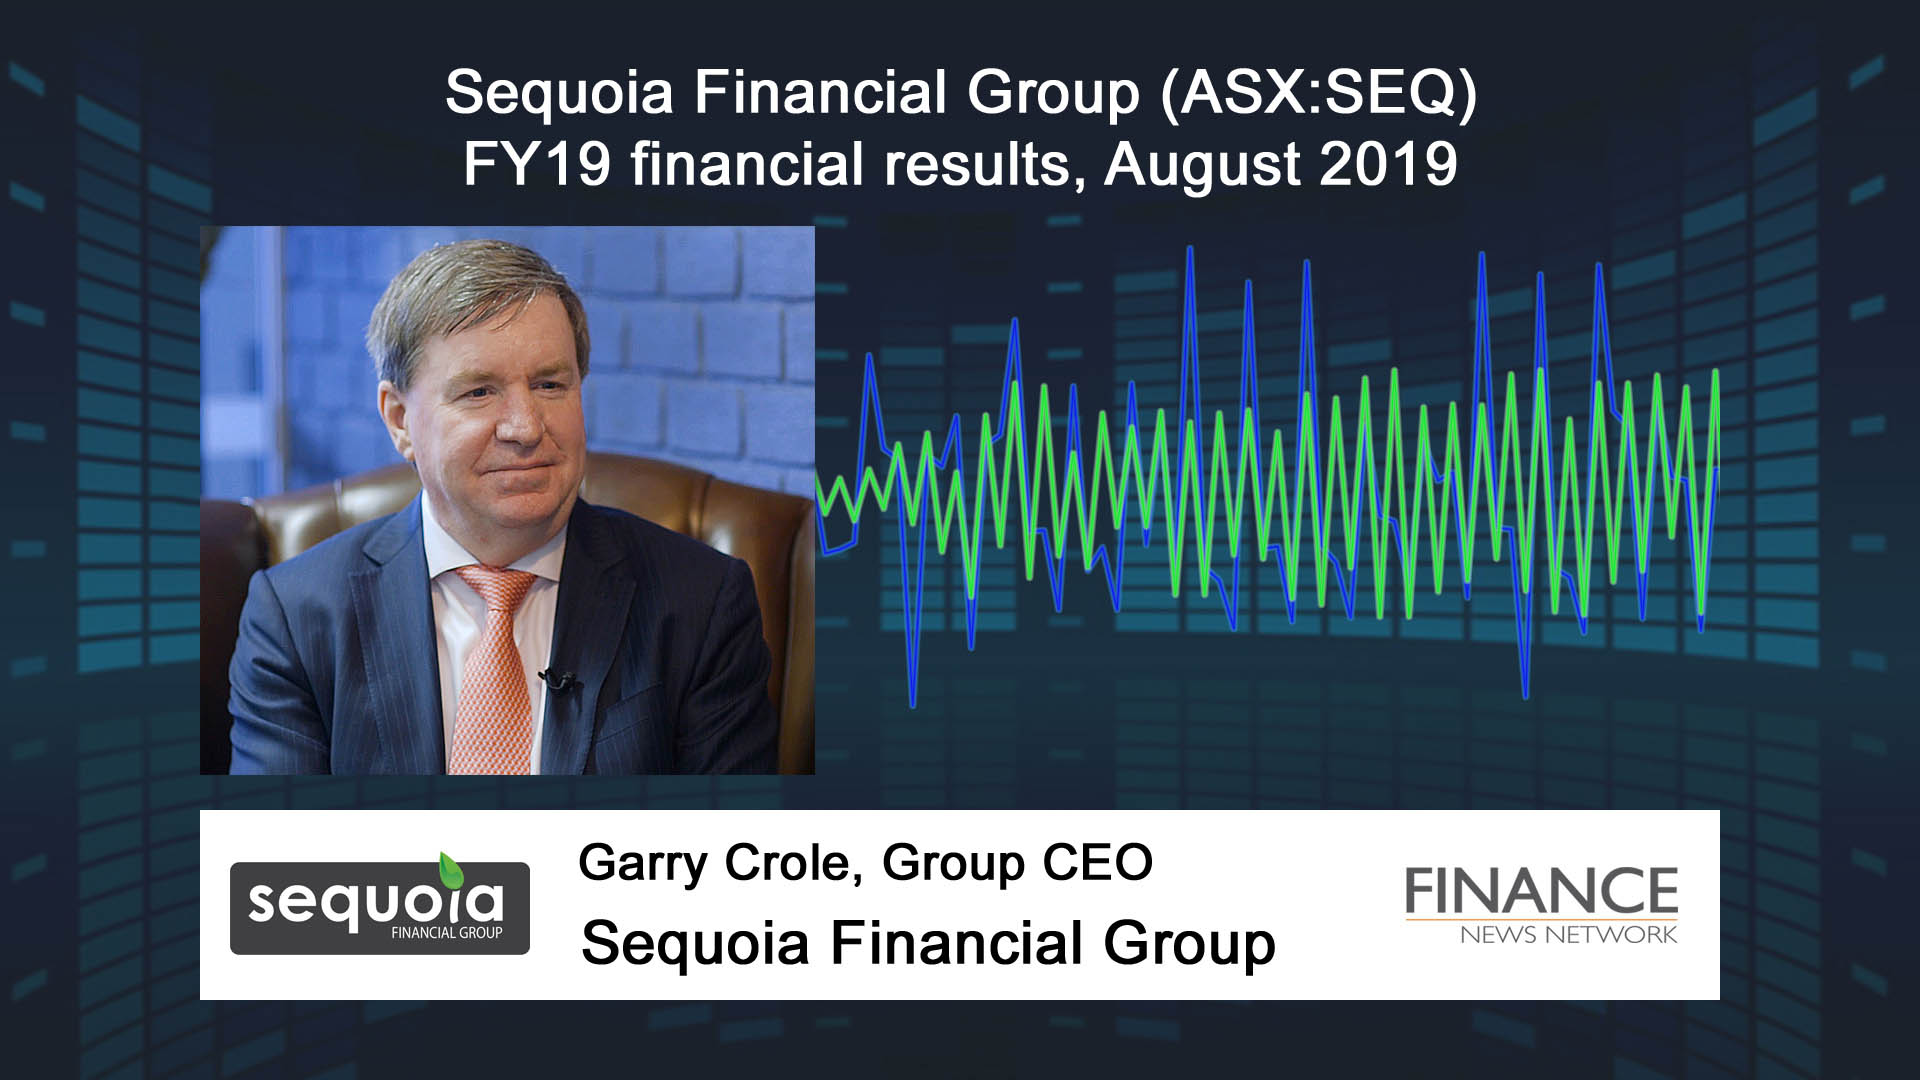 Sequoia Financial Group (ASX:SEQ) FY19 financial results